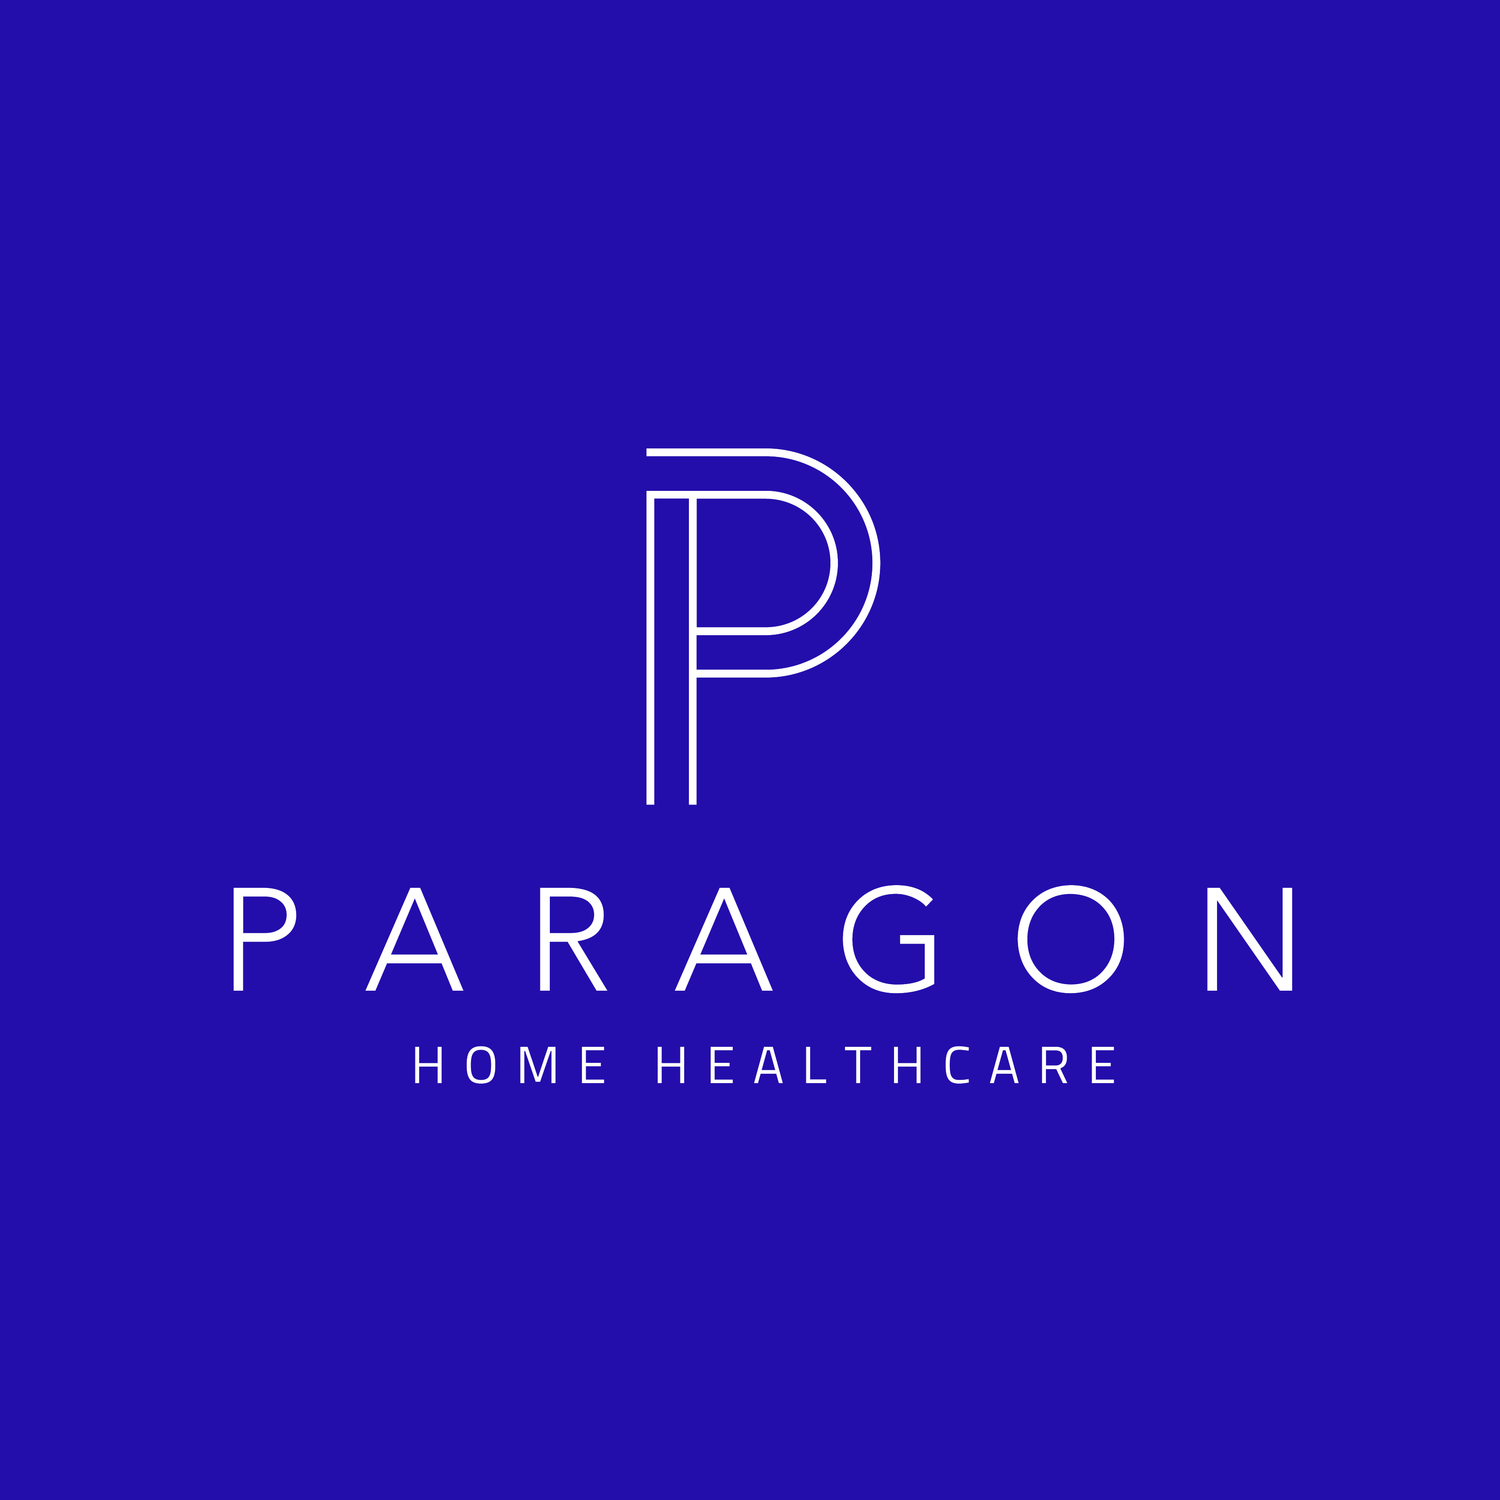 Paragon Home Healthcare - Live-in care